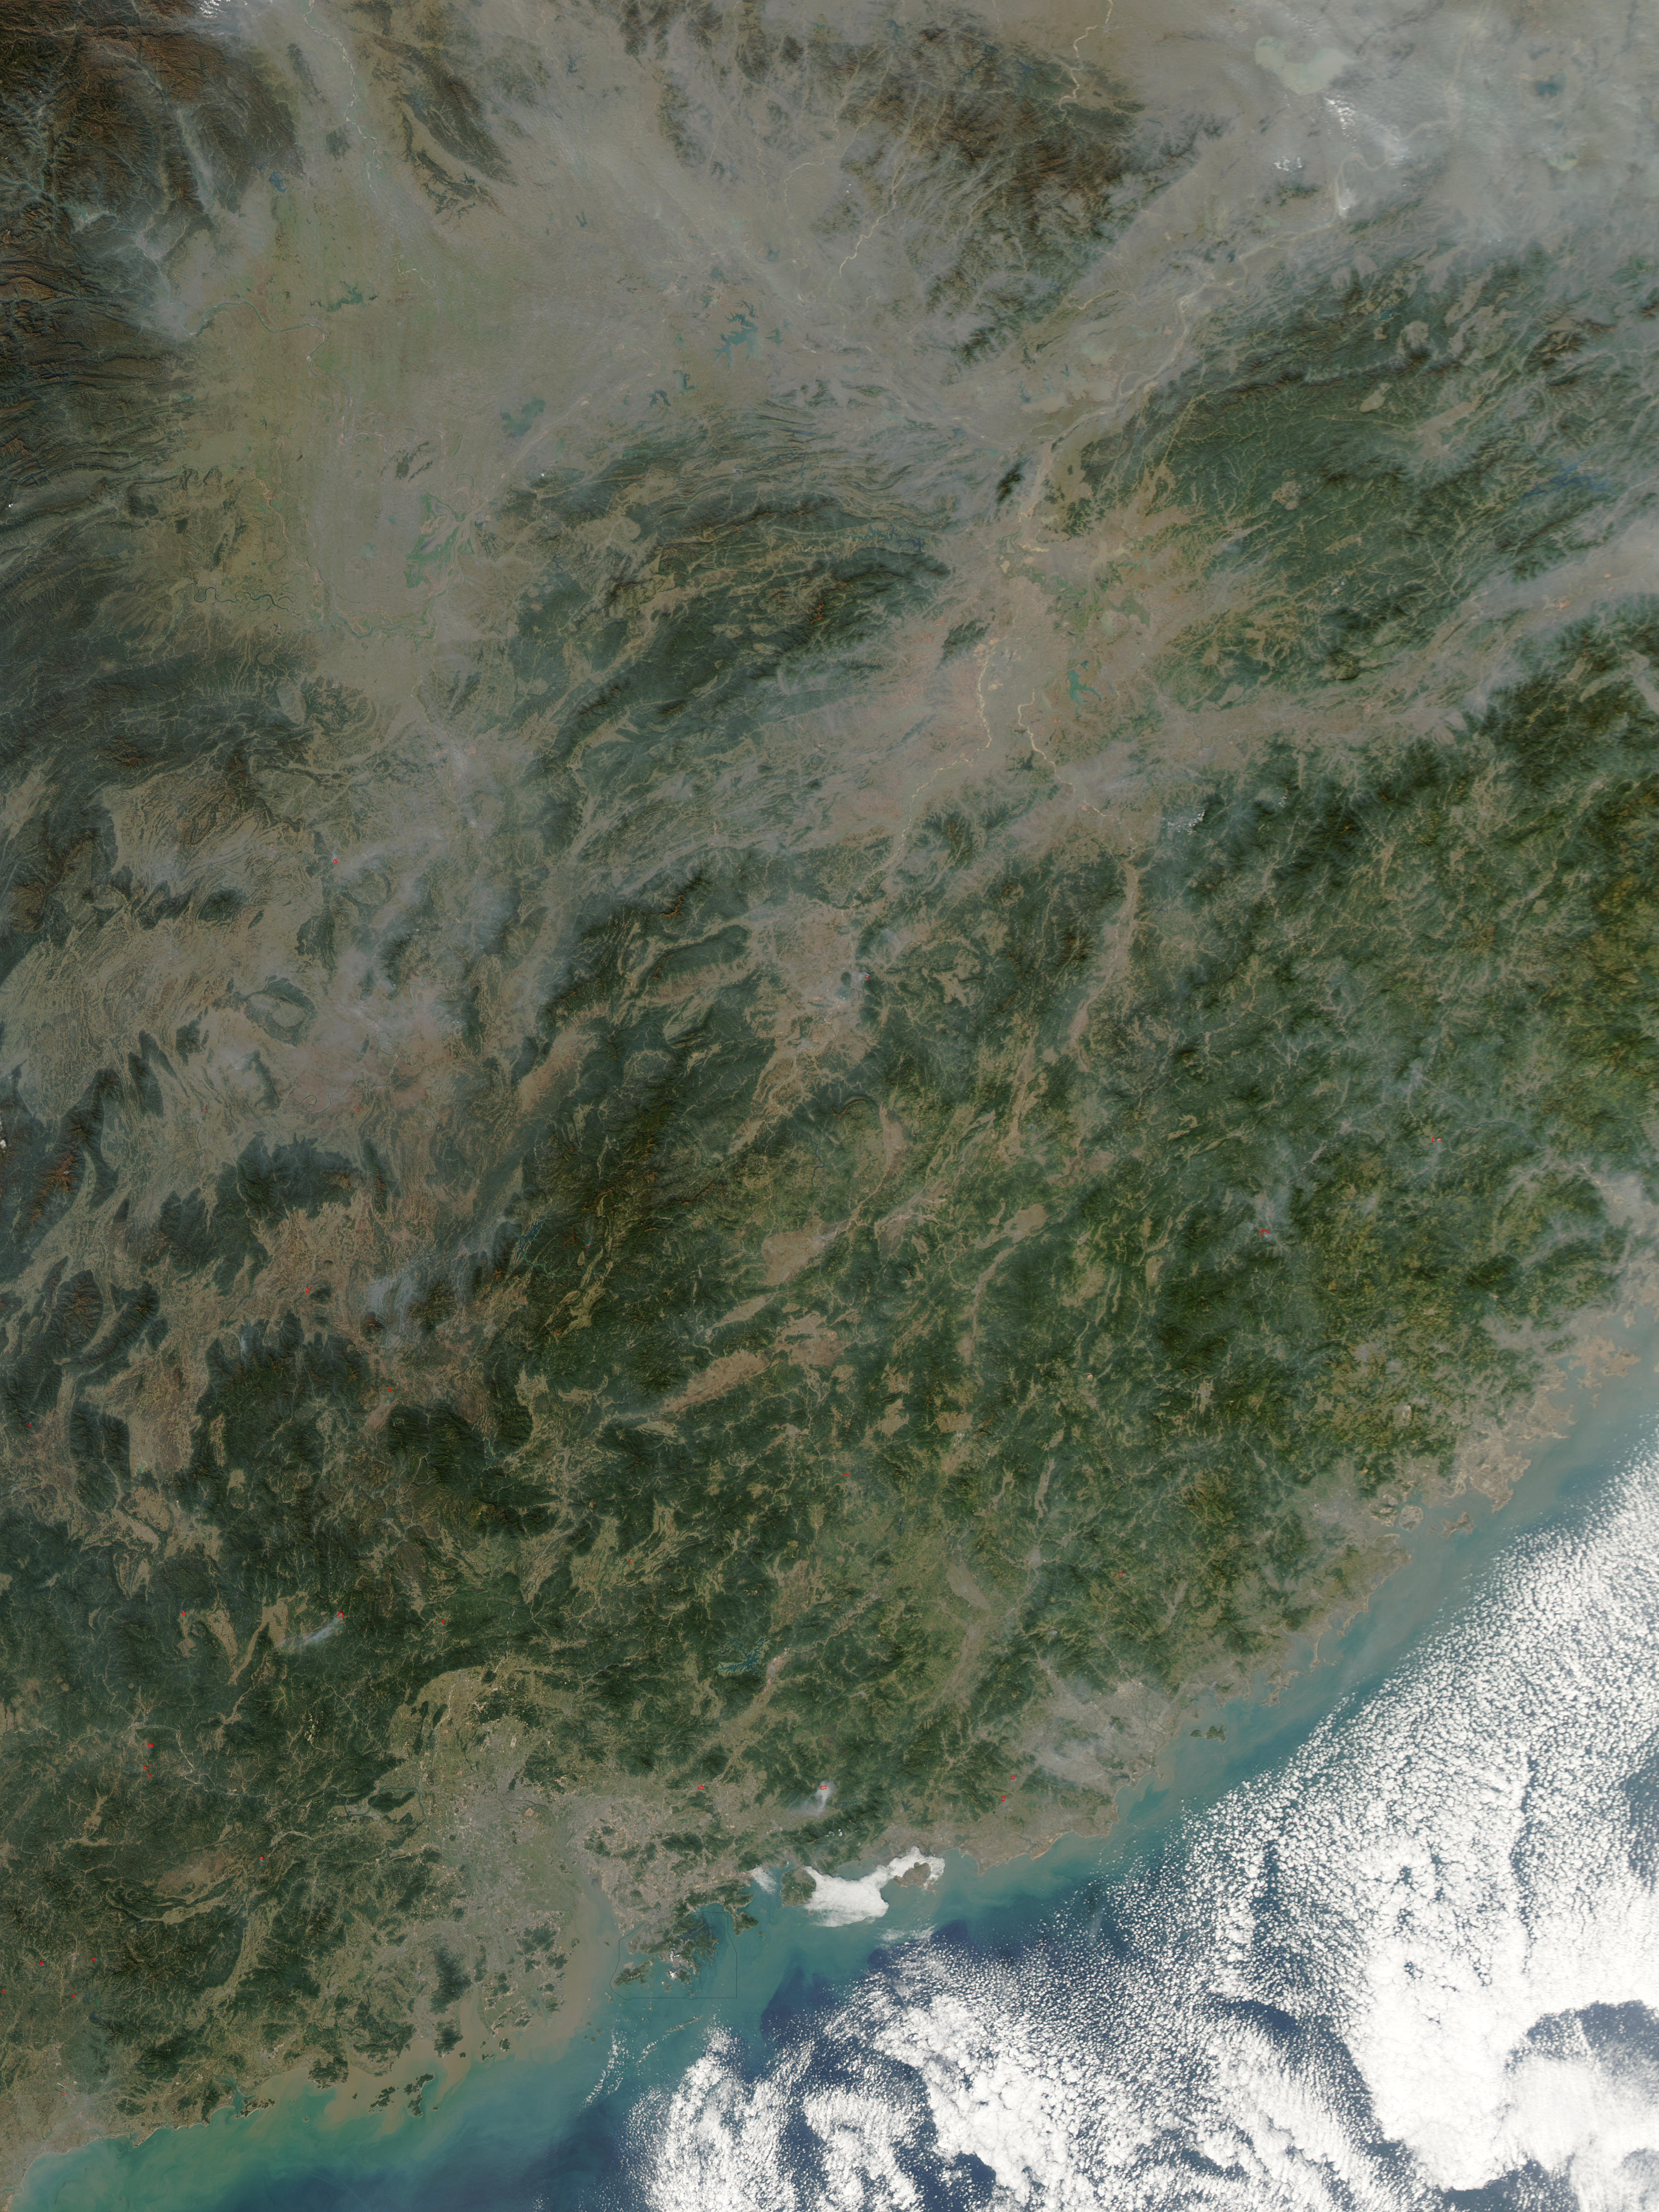 Incendios y calima en China suroriental